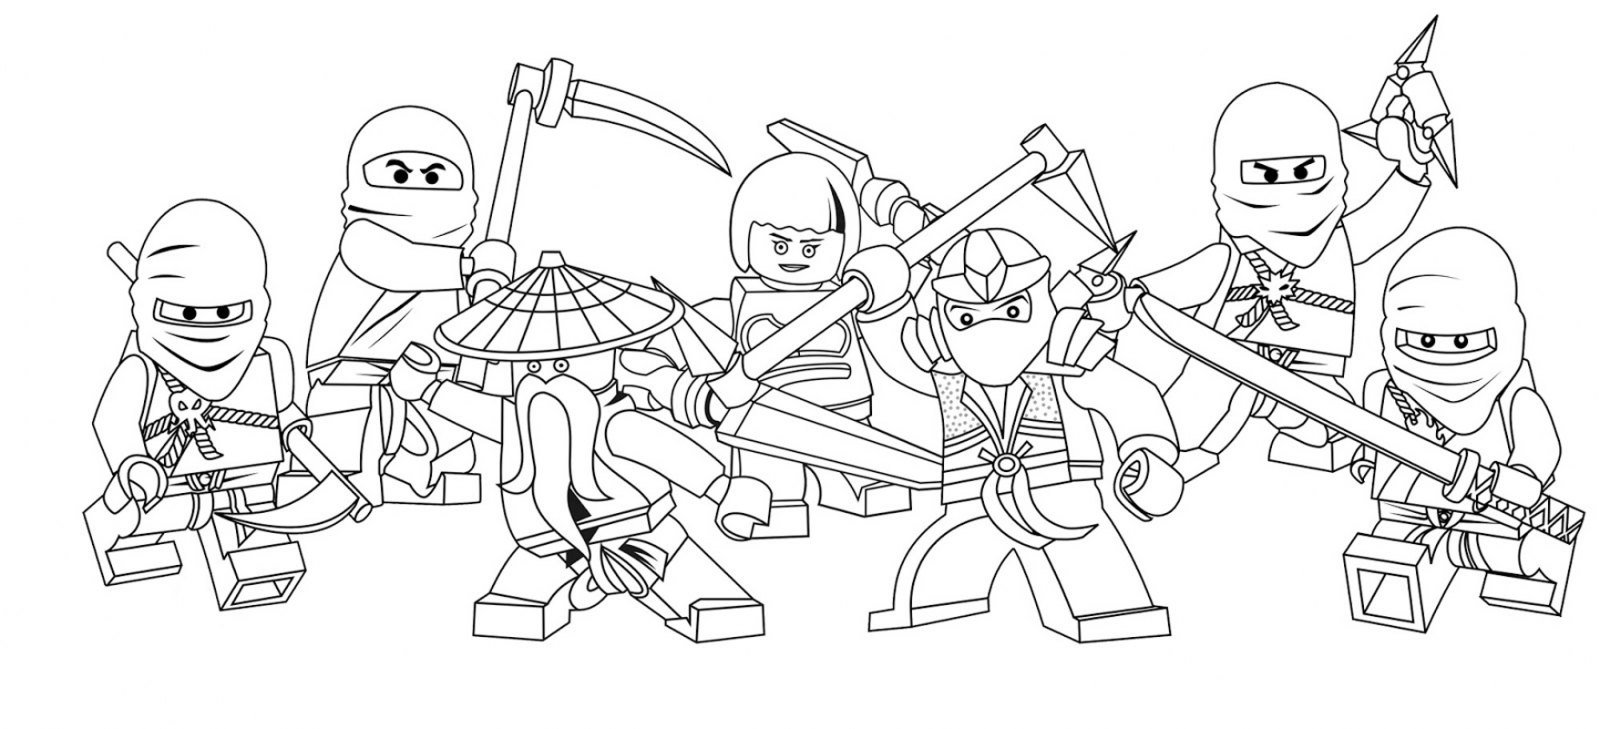 Dirt Bike Coloring Pages For Kids additionally Tag Coloriage De Lego Ninjago besides  likewise Dibujos De Lego Para Pintar in addition Rank 2014 Pickups. on ultimate police cars